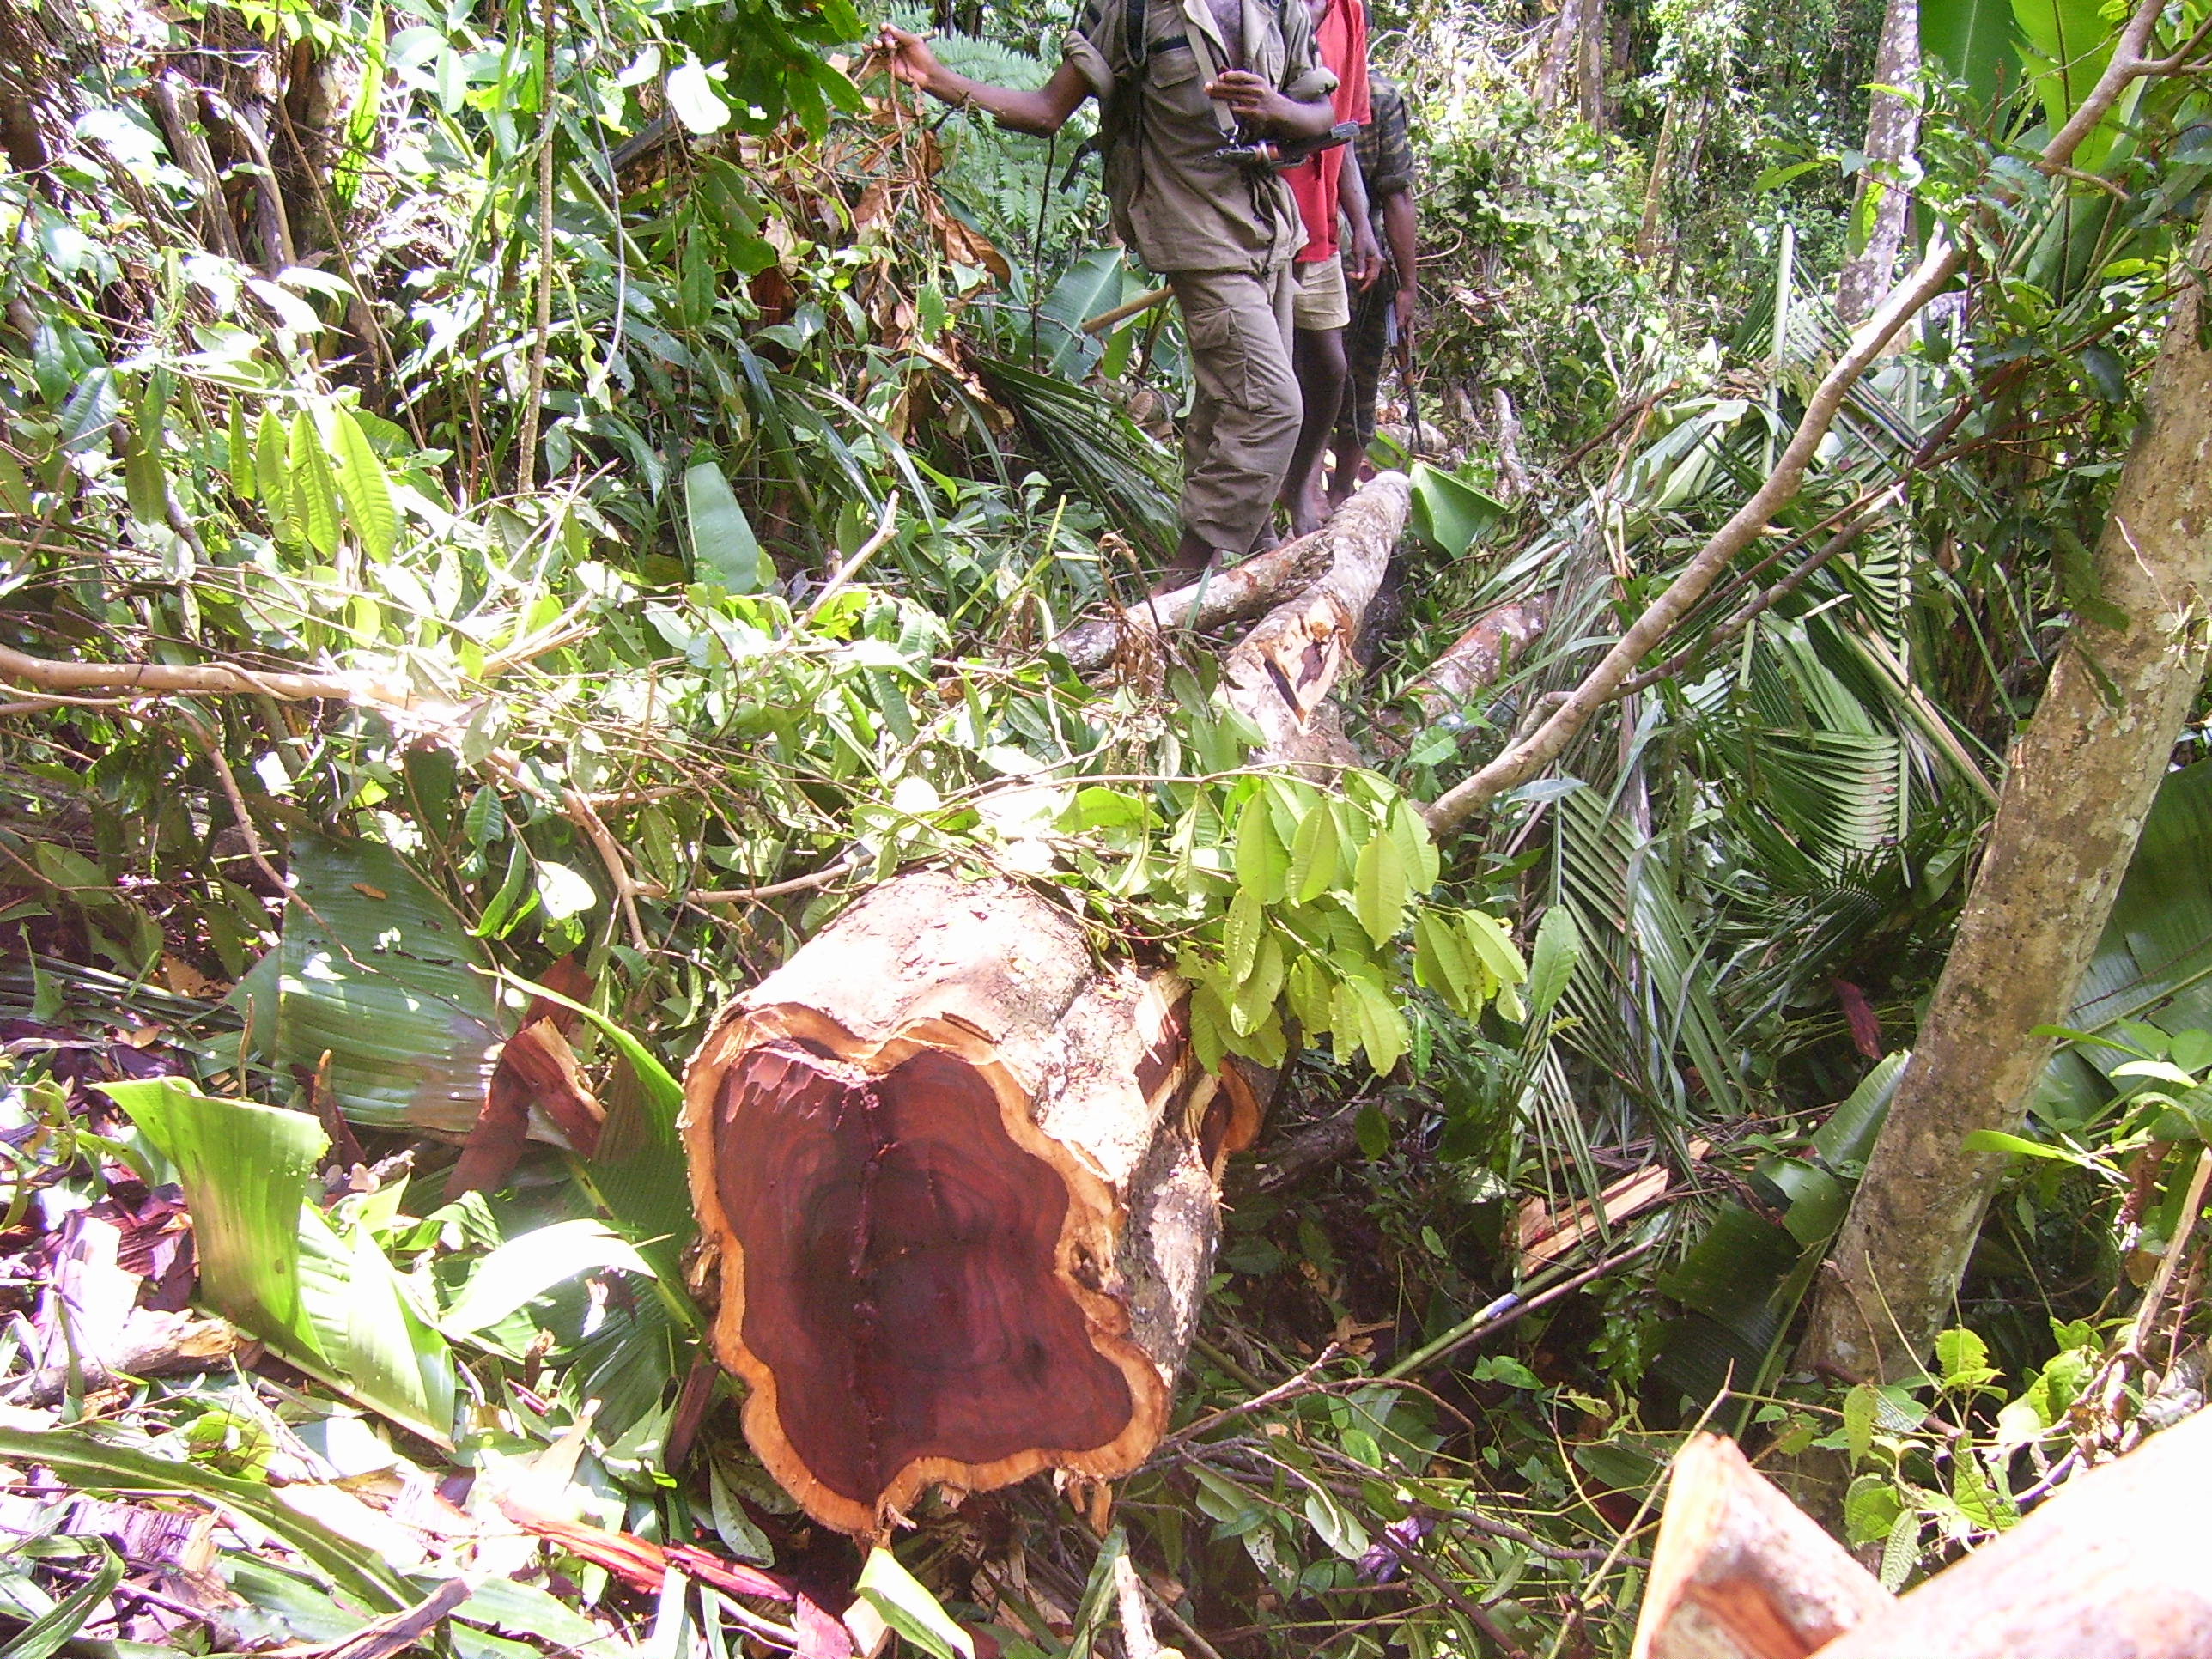 Rosewood logging in Madagascar during the 2009 military coup